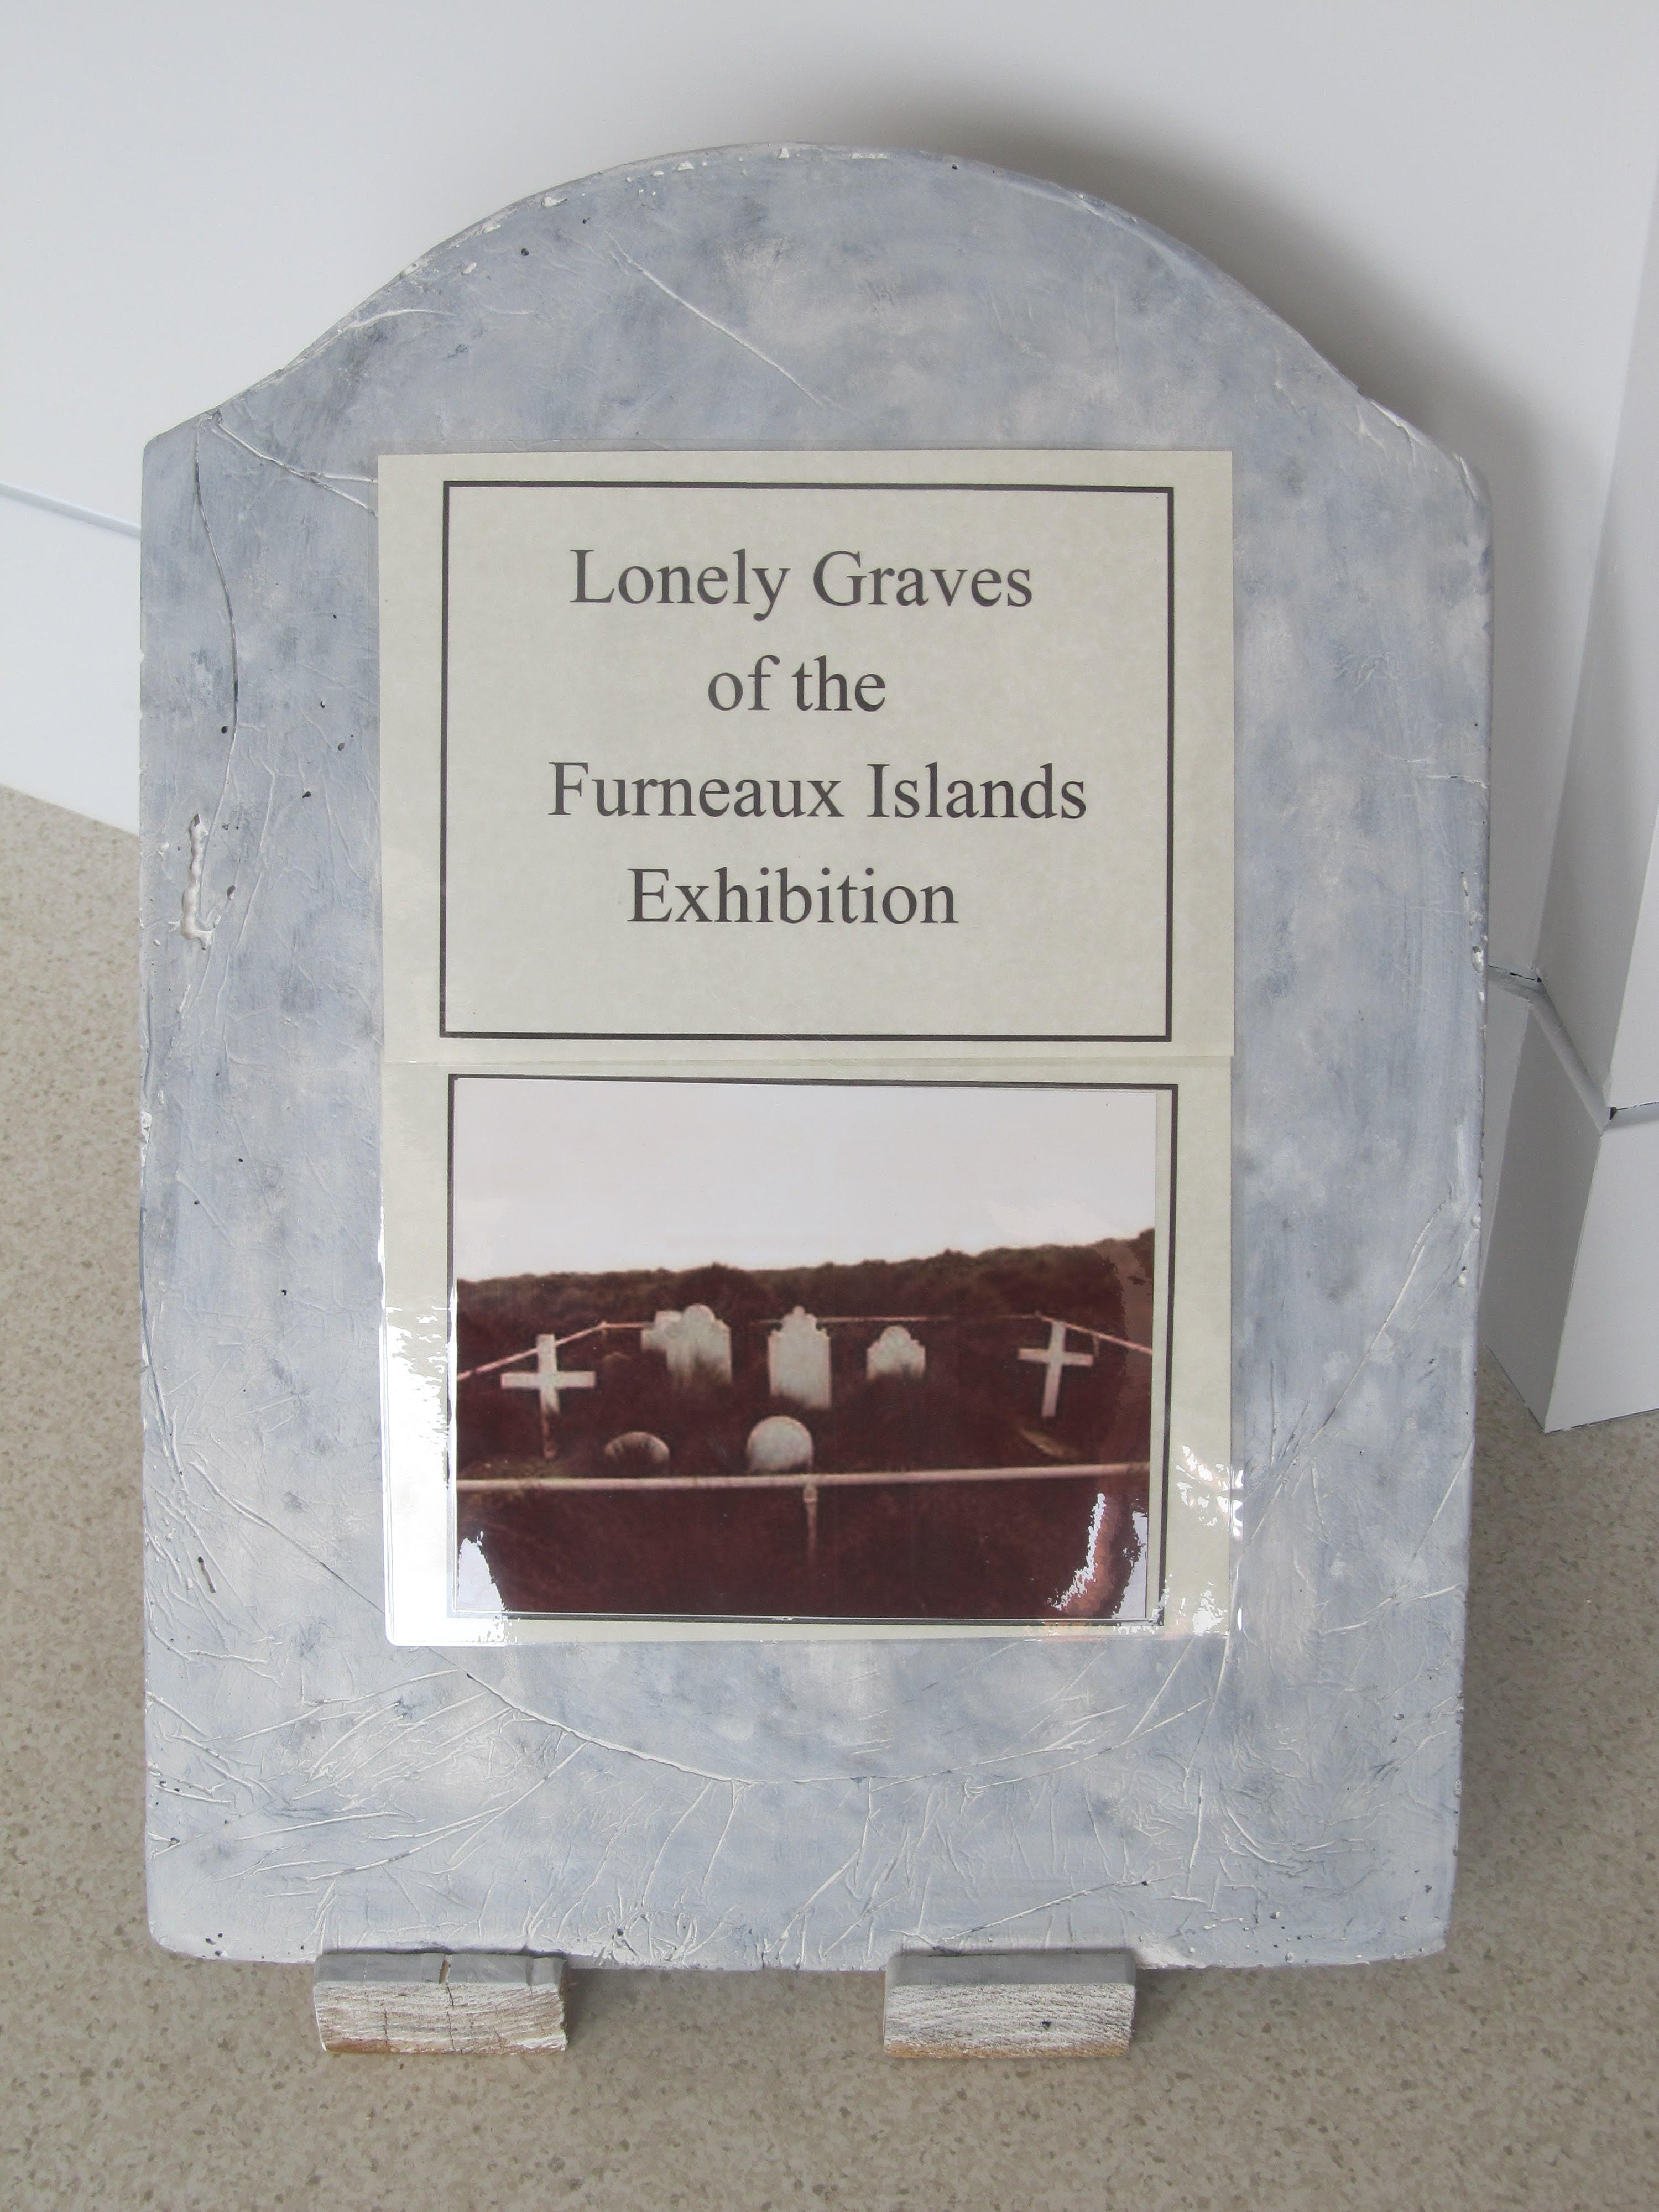 Lonely Graves of the Furneaux Islands Exhibition - Tourism Cairns